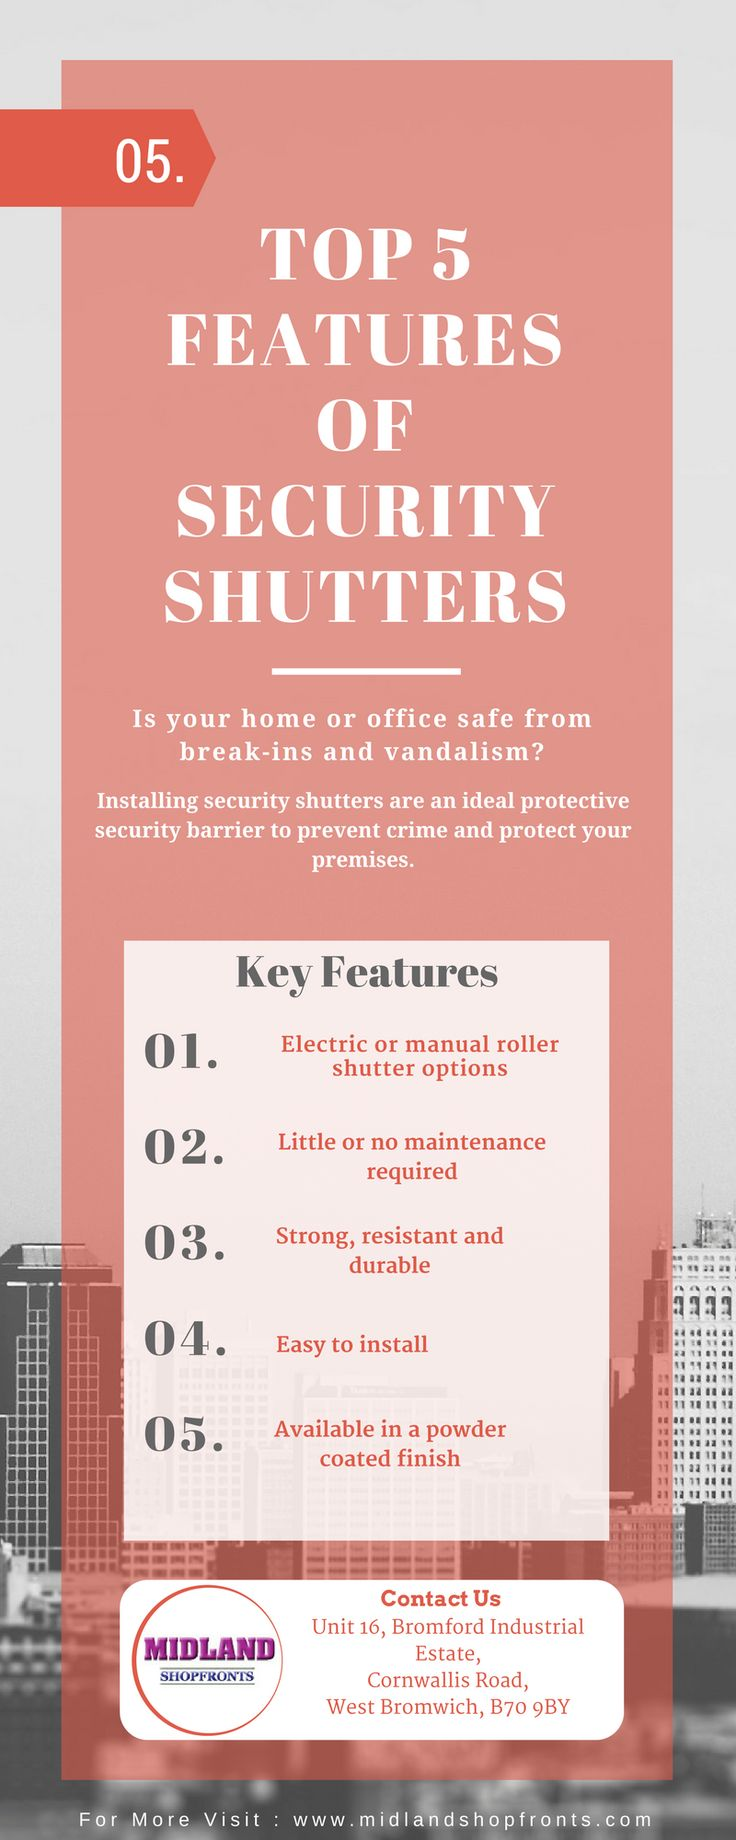 17 Images About Security Shutters On Pinterest